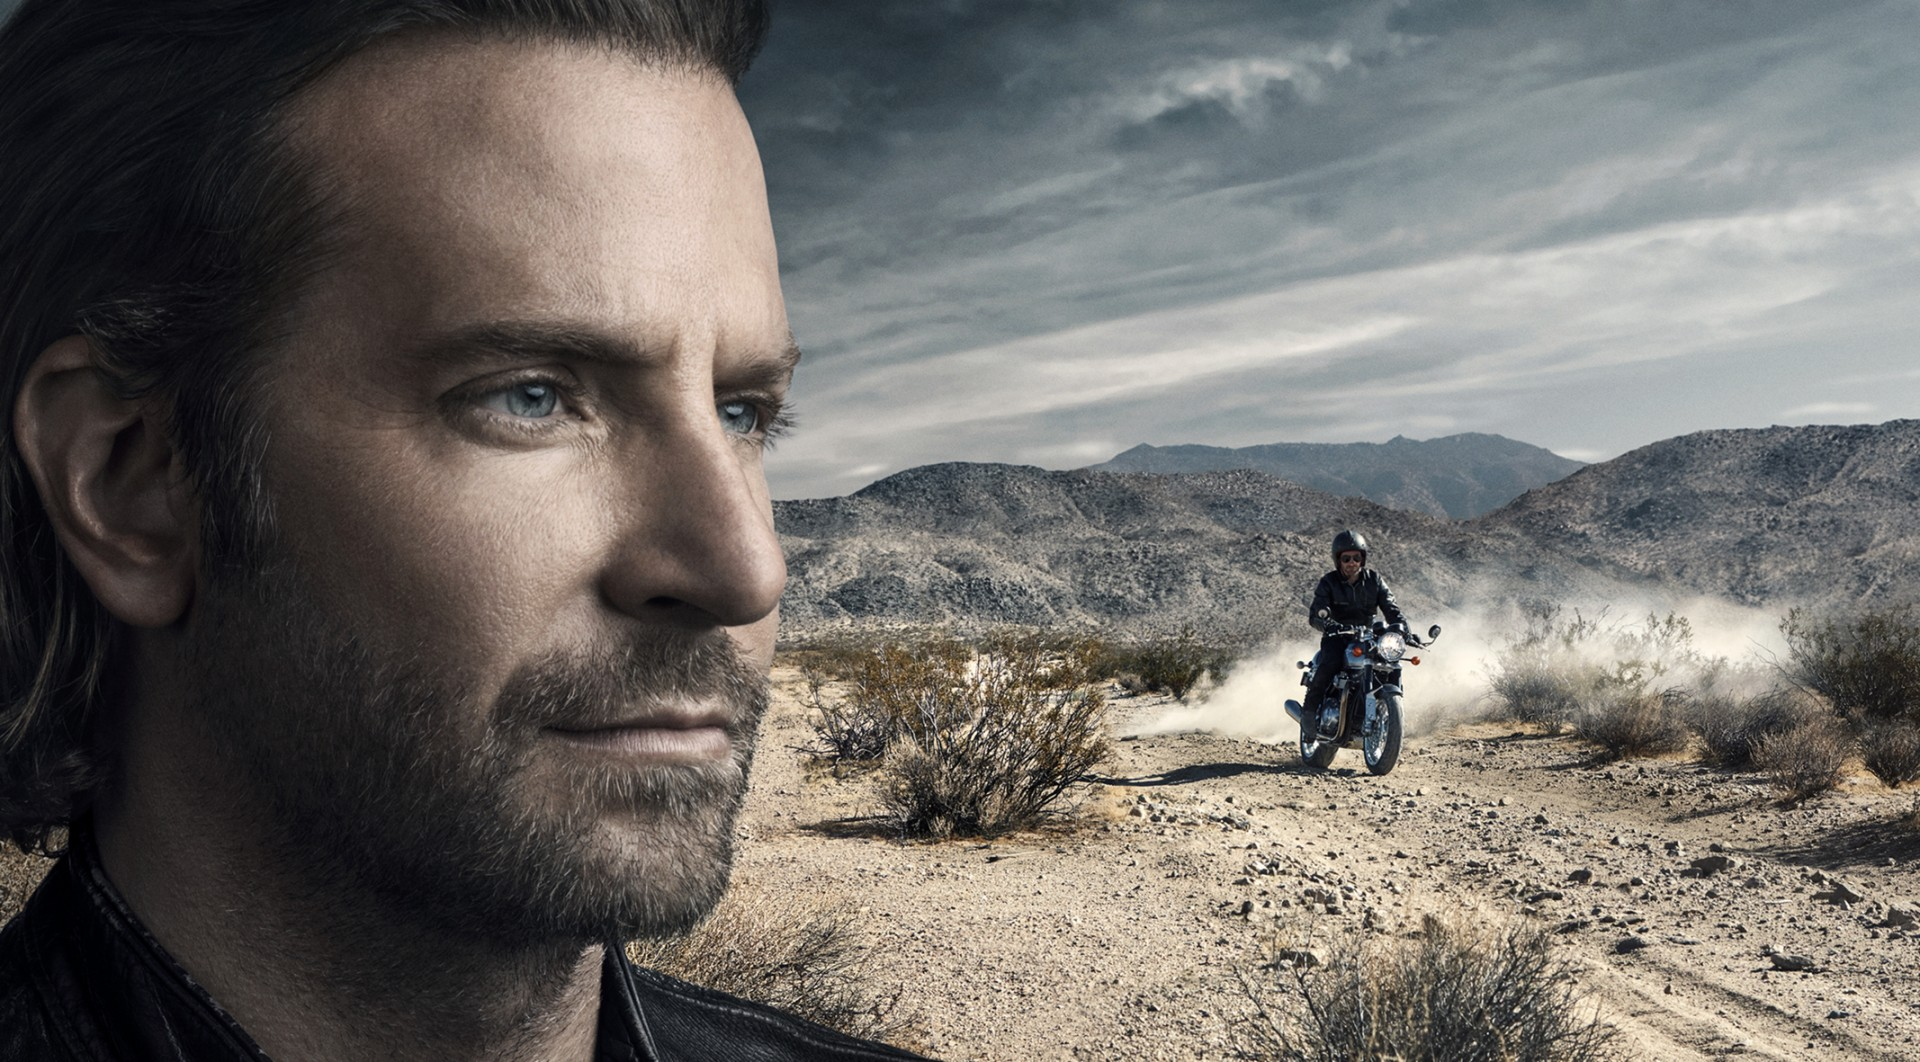 IWC LAUNCHES GLOBAL ADVERTISING CAMPAIGN WITH BRADLEY COOPER